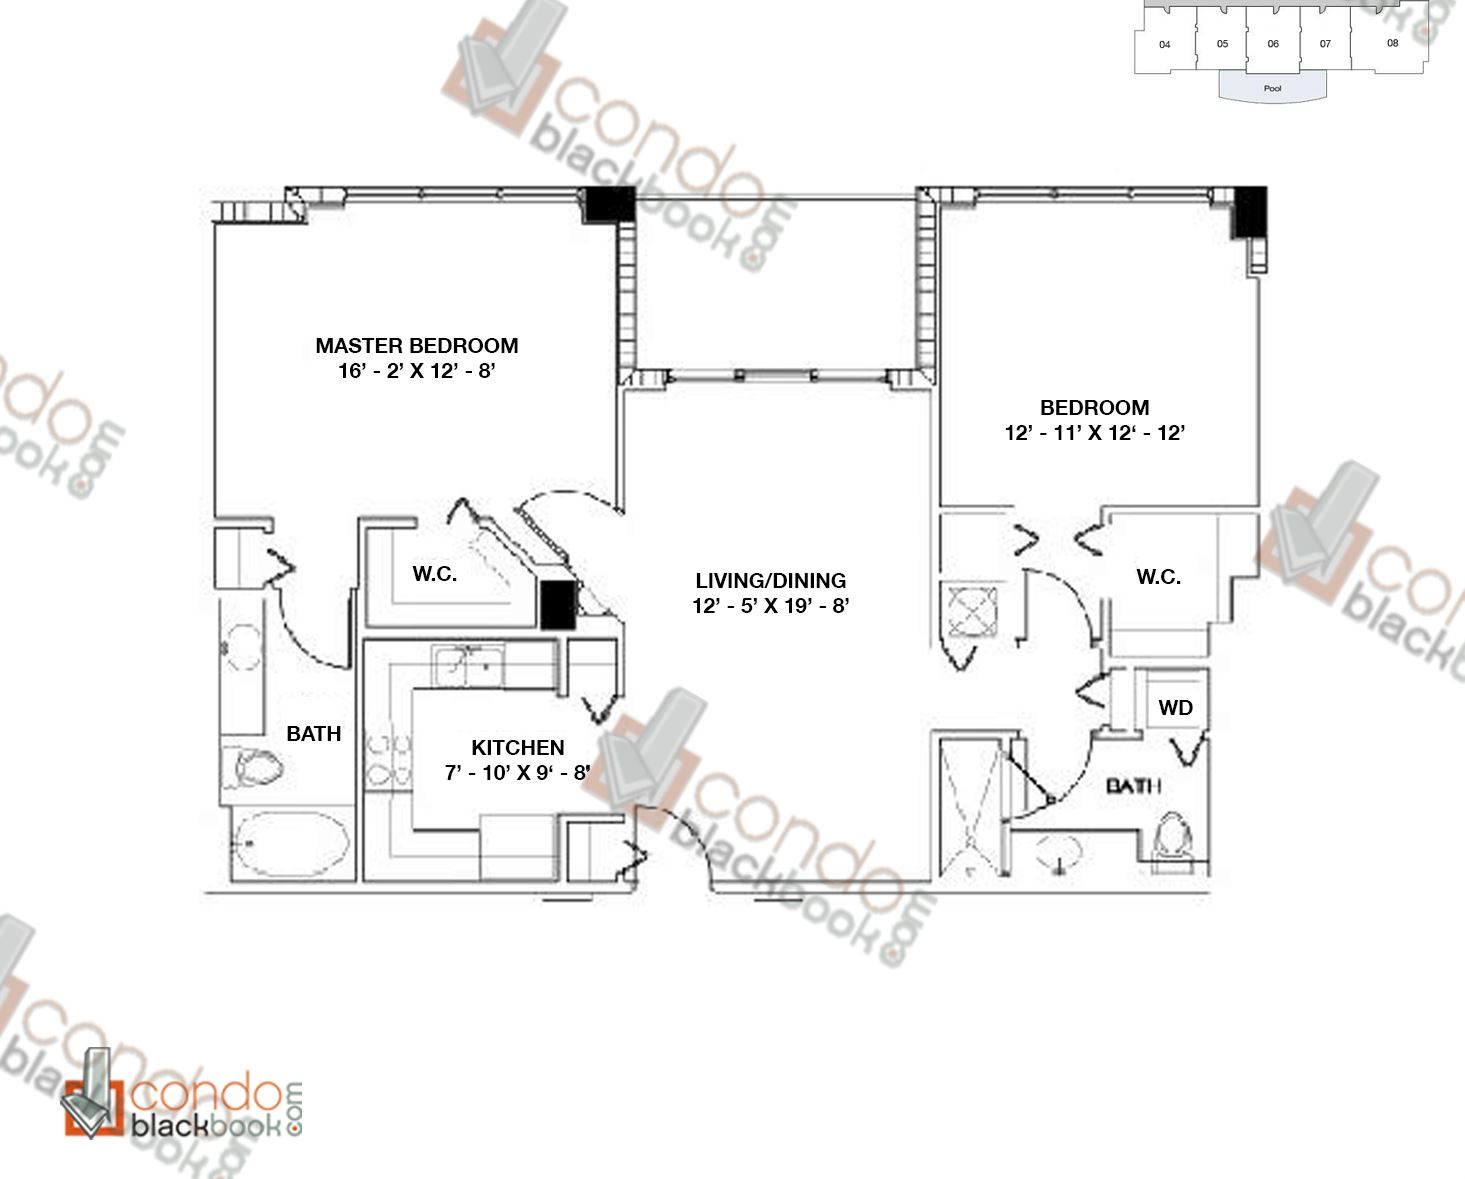 Floor plan for Moon Bay Edgewater Miami, model A, line 01, 2/2 bedrooms, 1065 sq ft